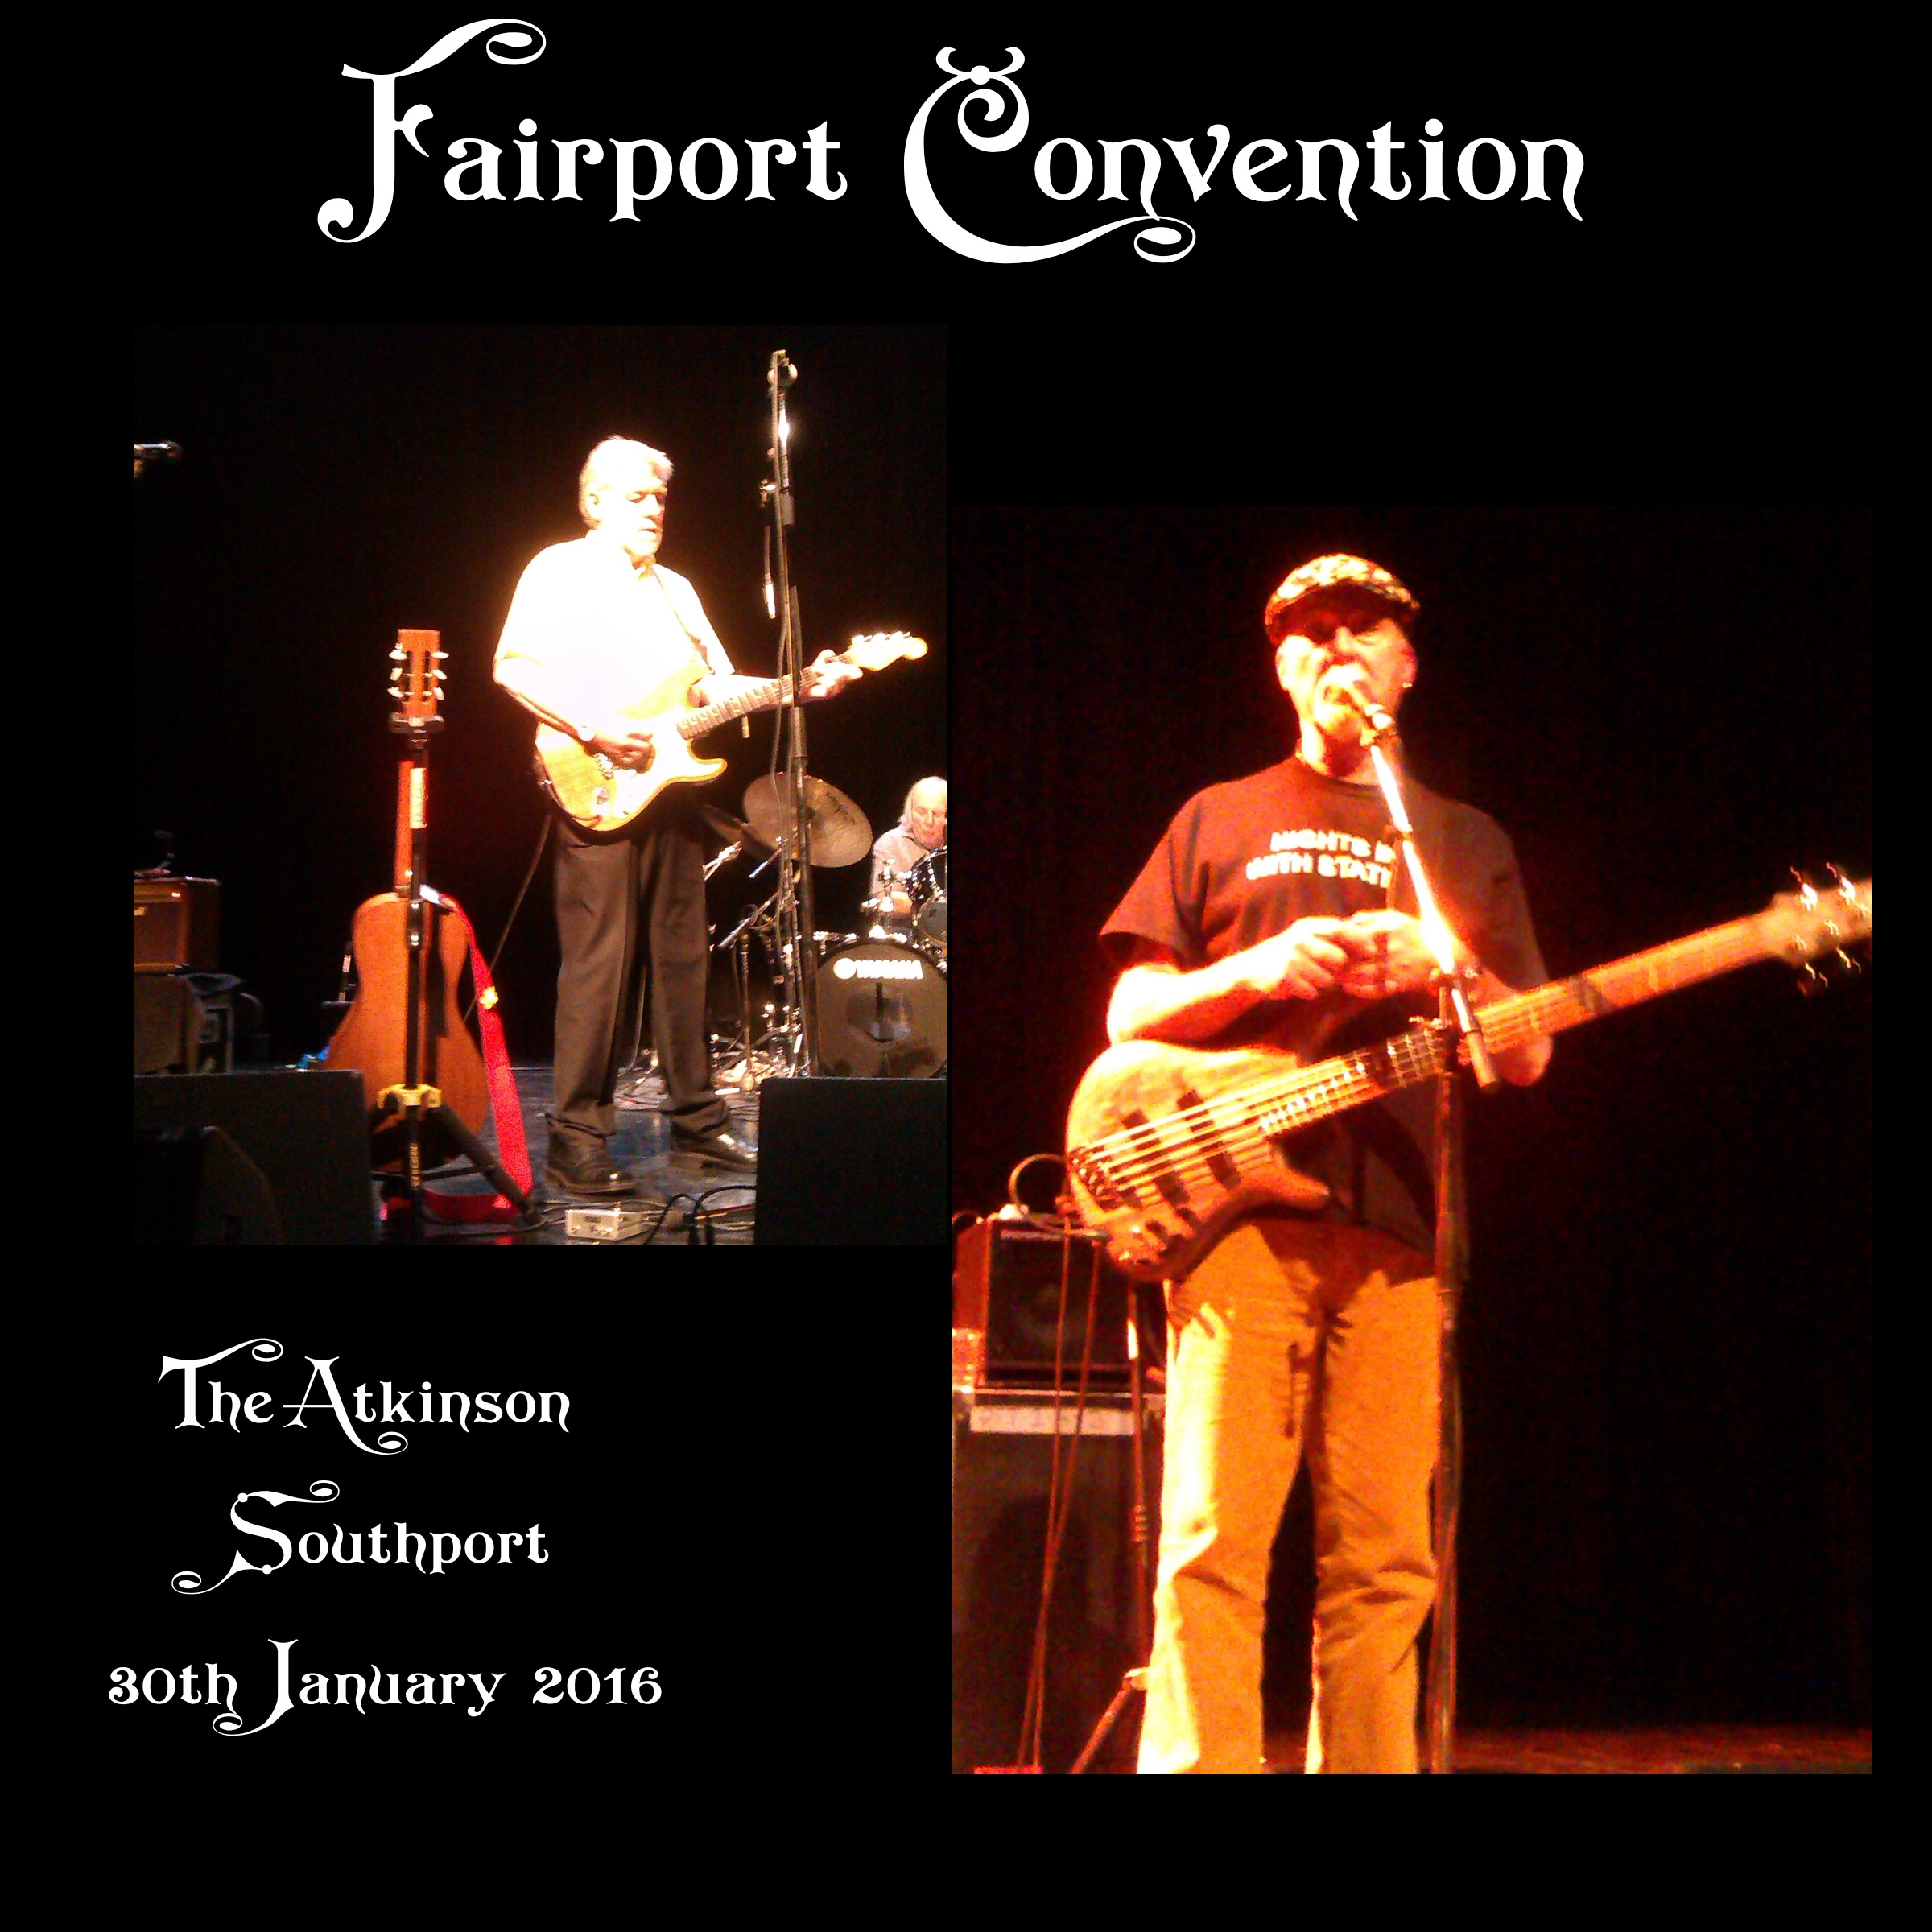 FairportConvention2016-01-30TheAtkinsonSouthportUK. (1).jpg